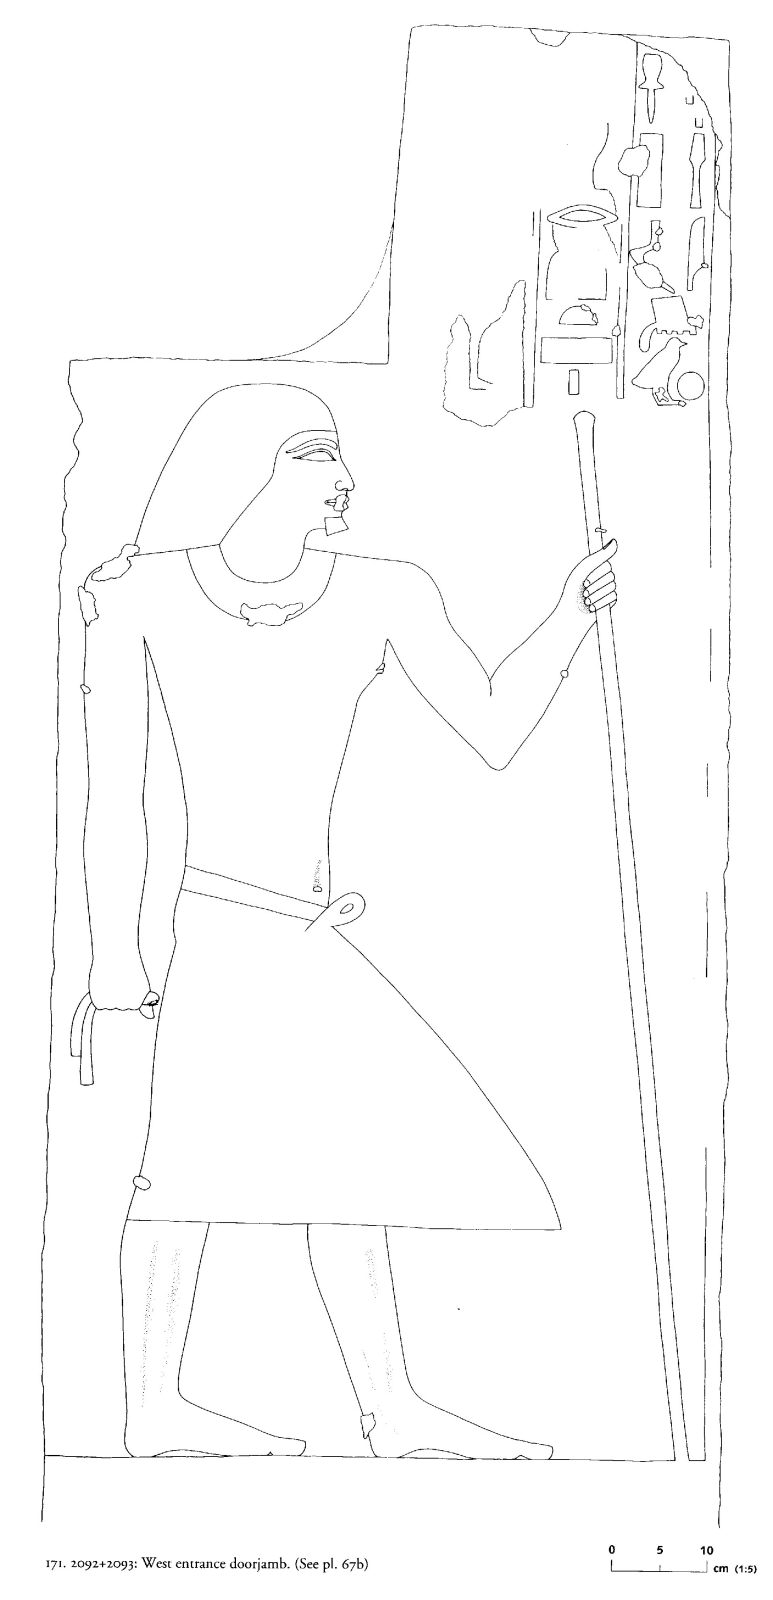 Drawings: G 2092+2093: relief from entrance, W jamb